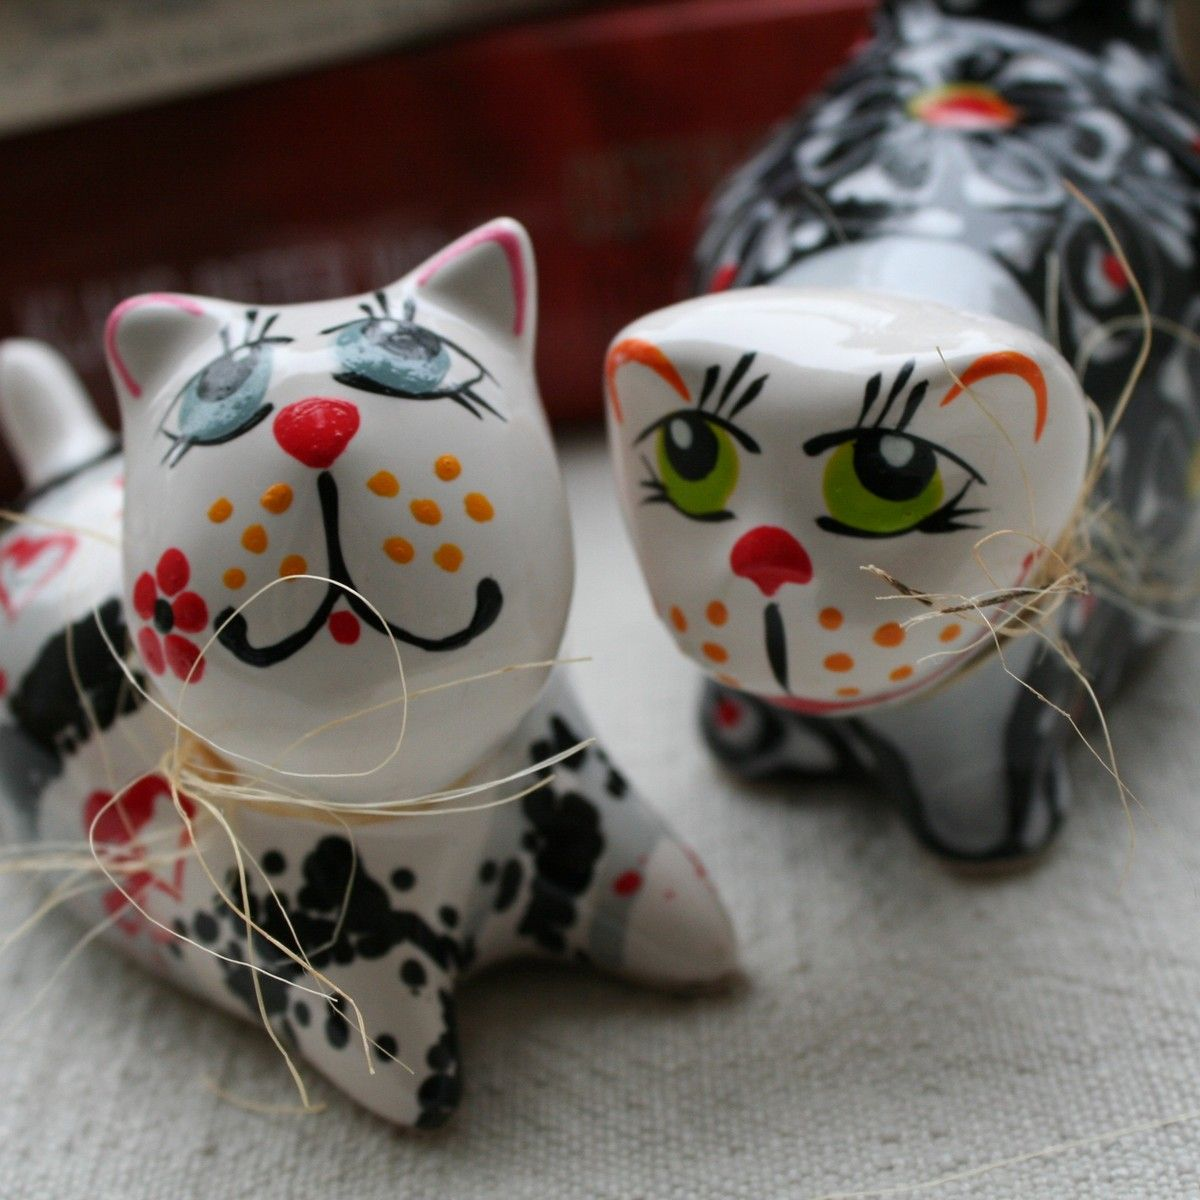 Wood cat Figurine Crafted Wood Home Decor.Valentine gift for women Wooden figure of a cat